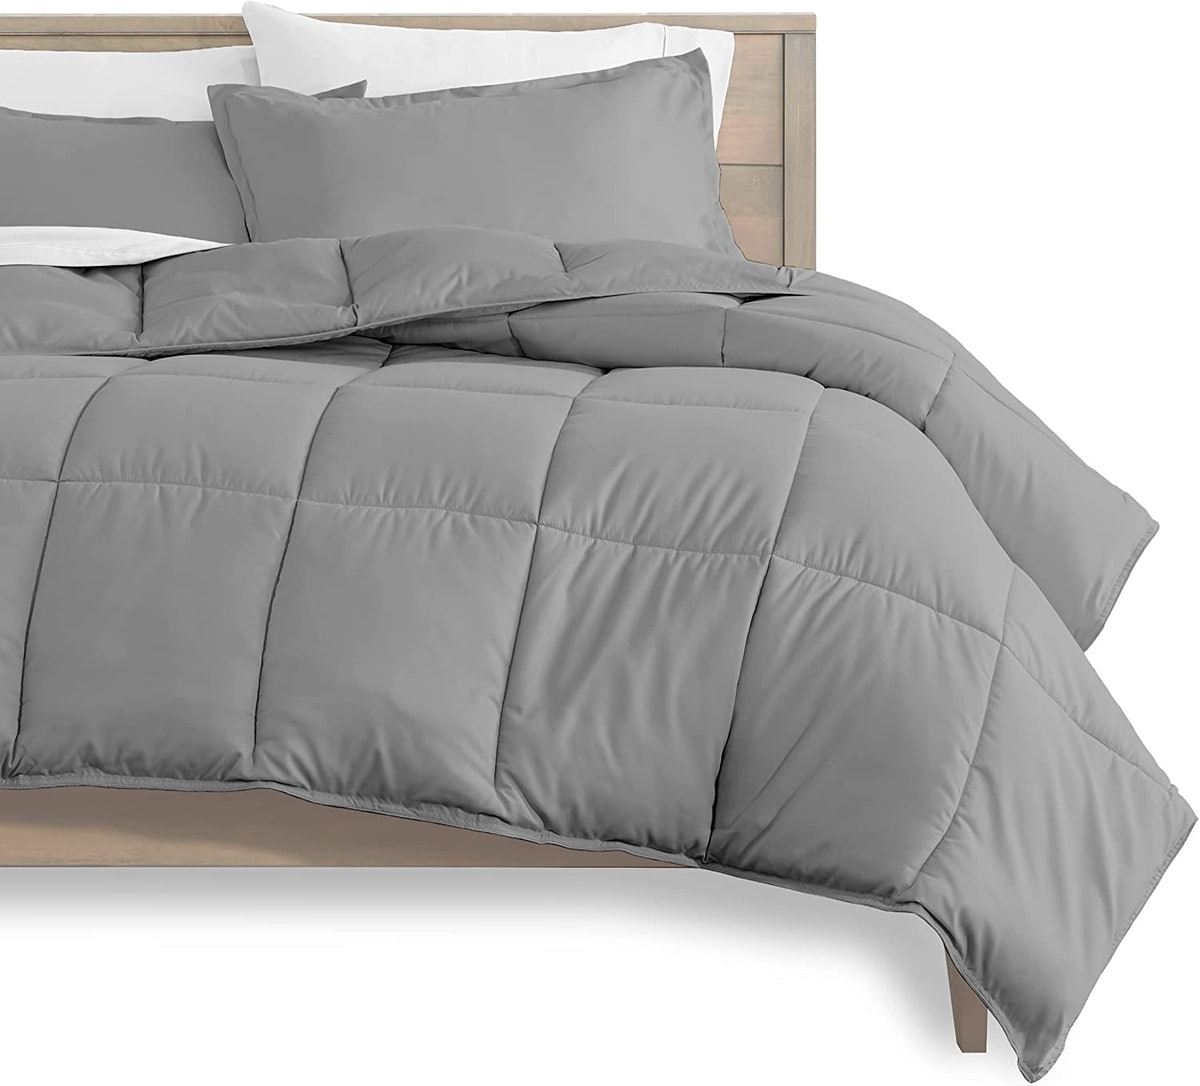 Bare Home Comforter And Sheets Set (5 Piece)